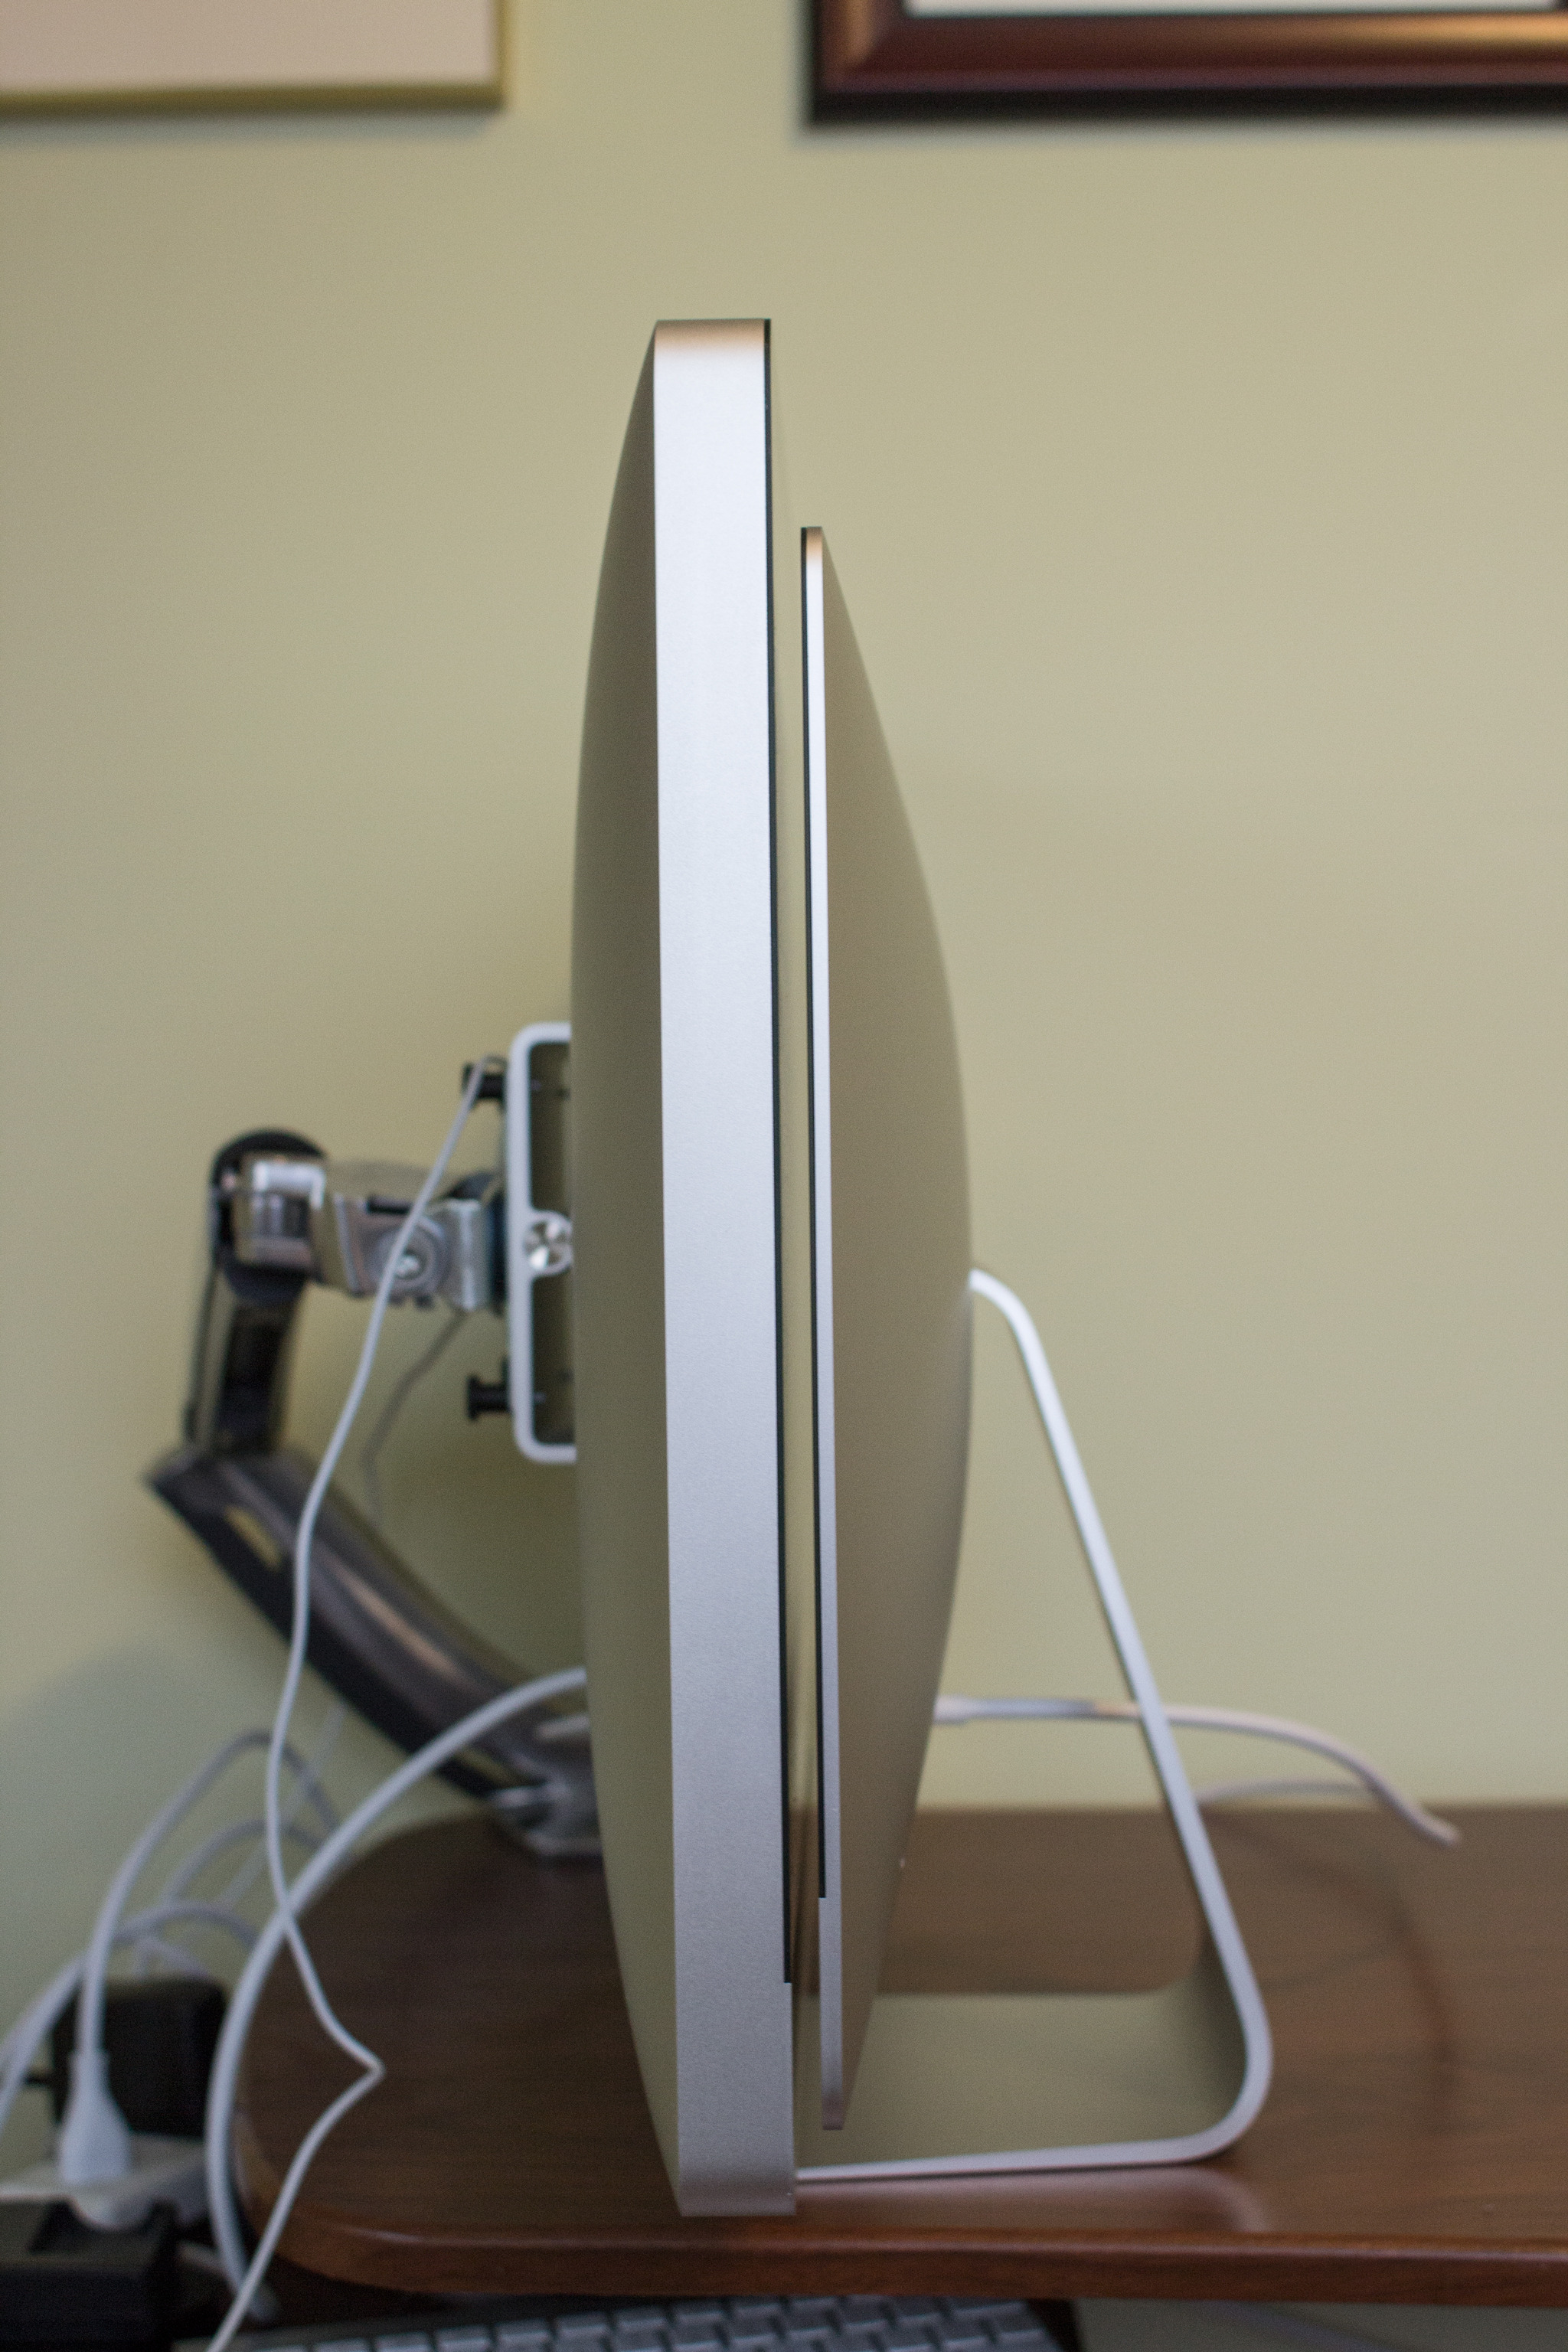 2011 iMac (left) thickness comparison to 2012 iMac (right)